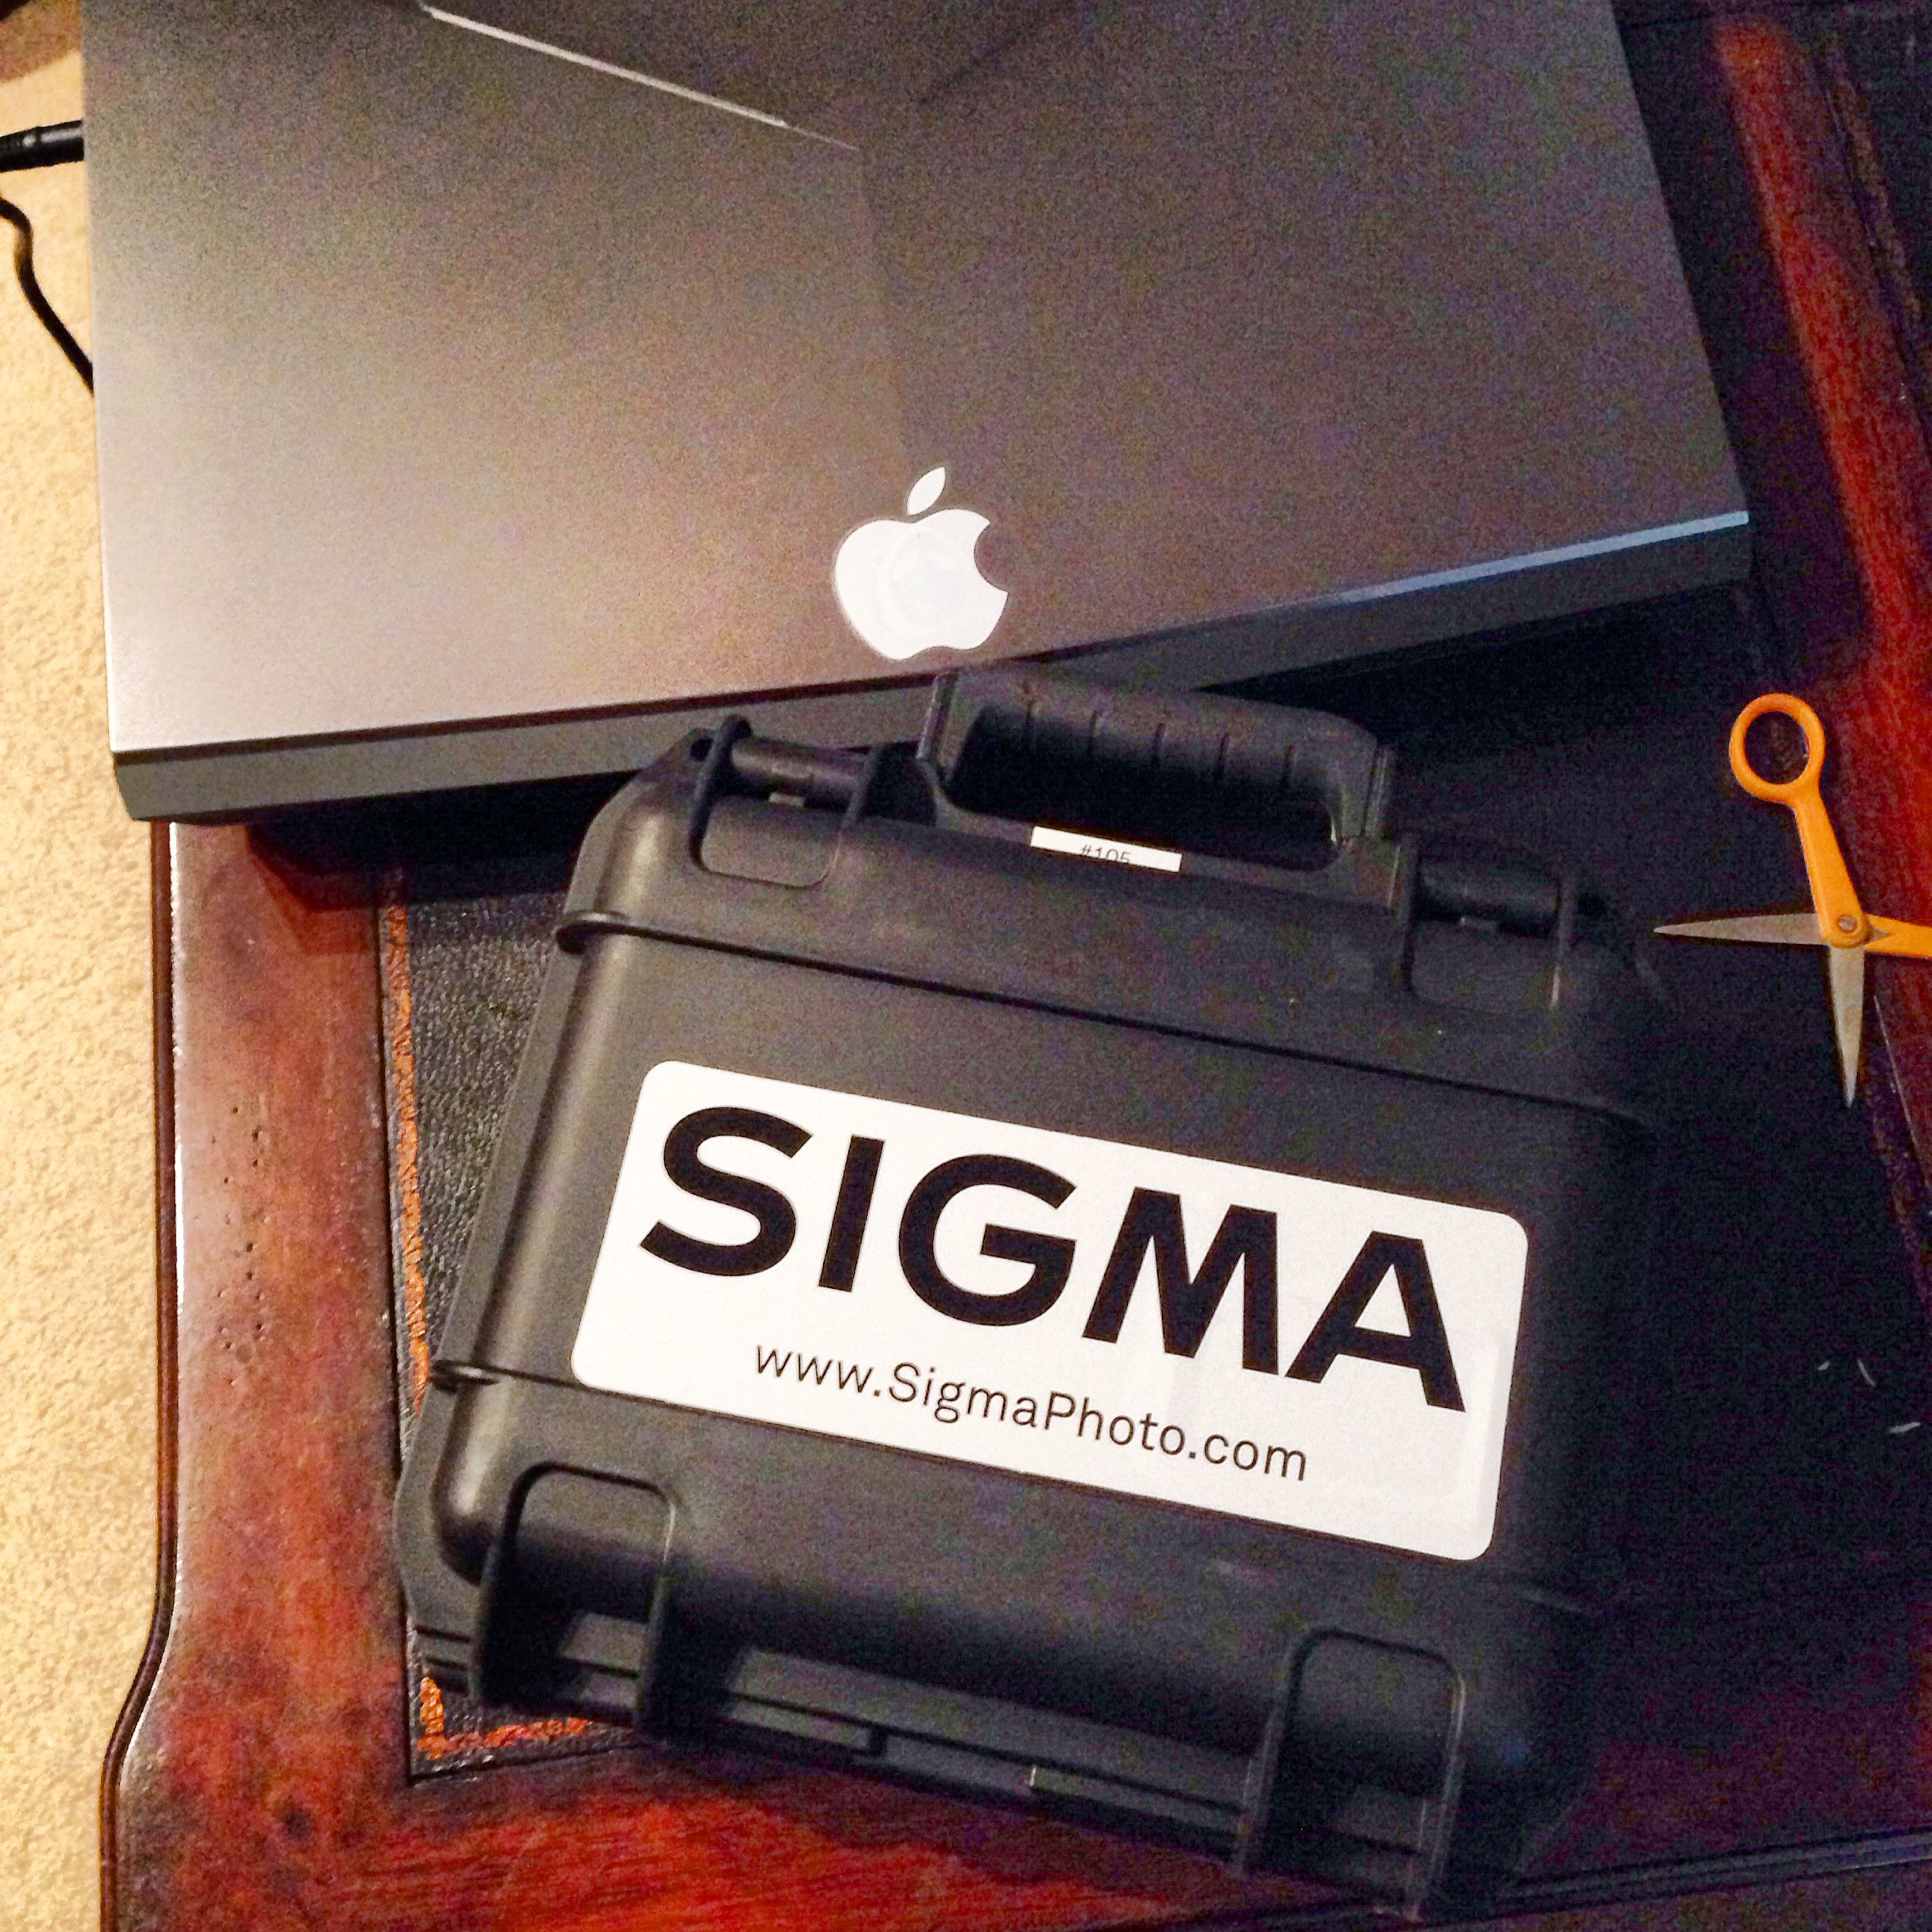 What a cool way to send a demo camera!